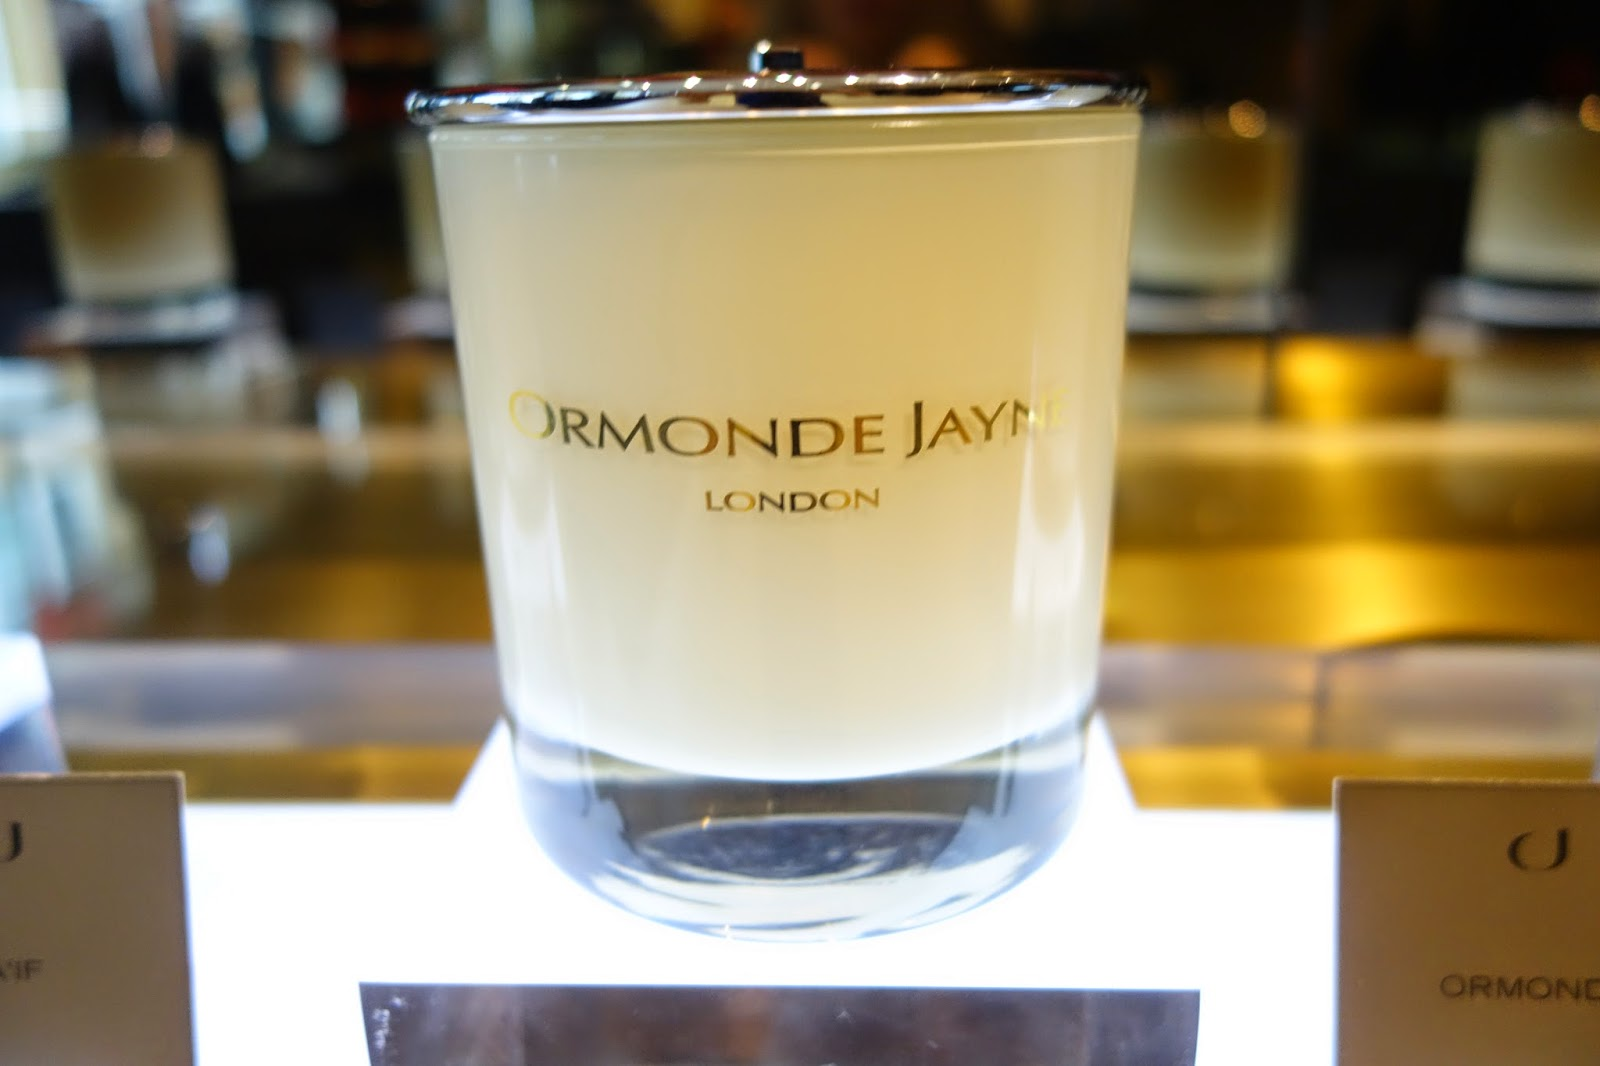 A Perfume portrait at Ormonde Jayne